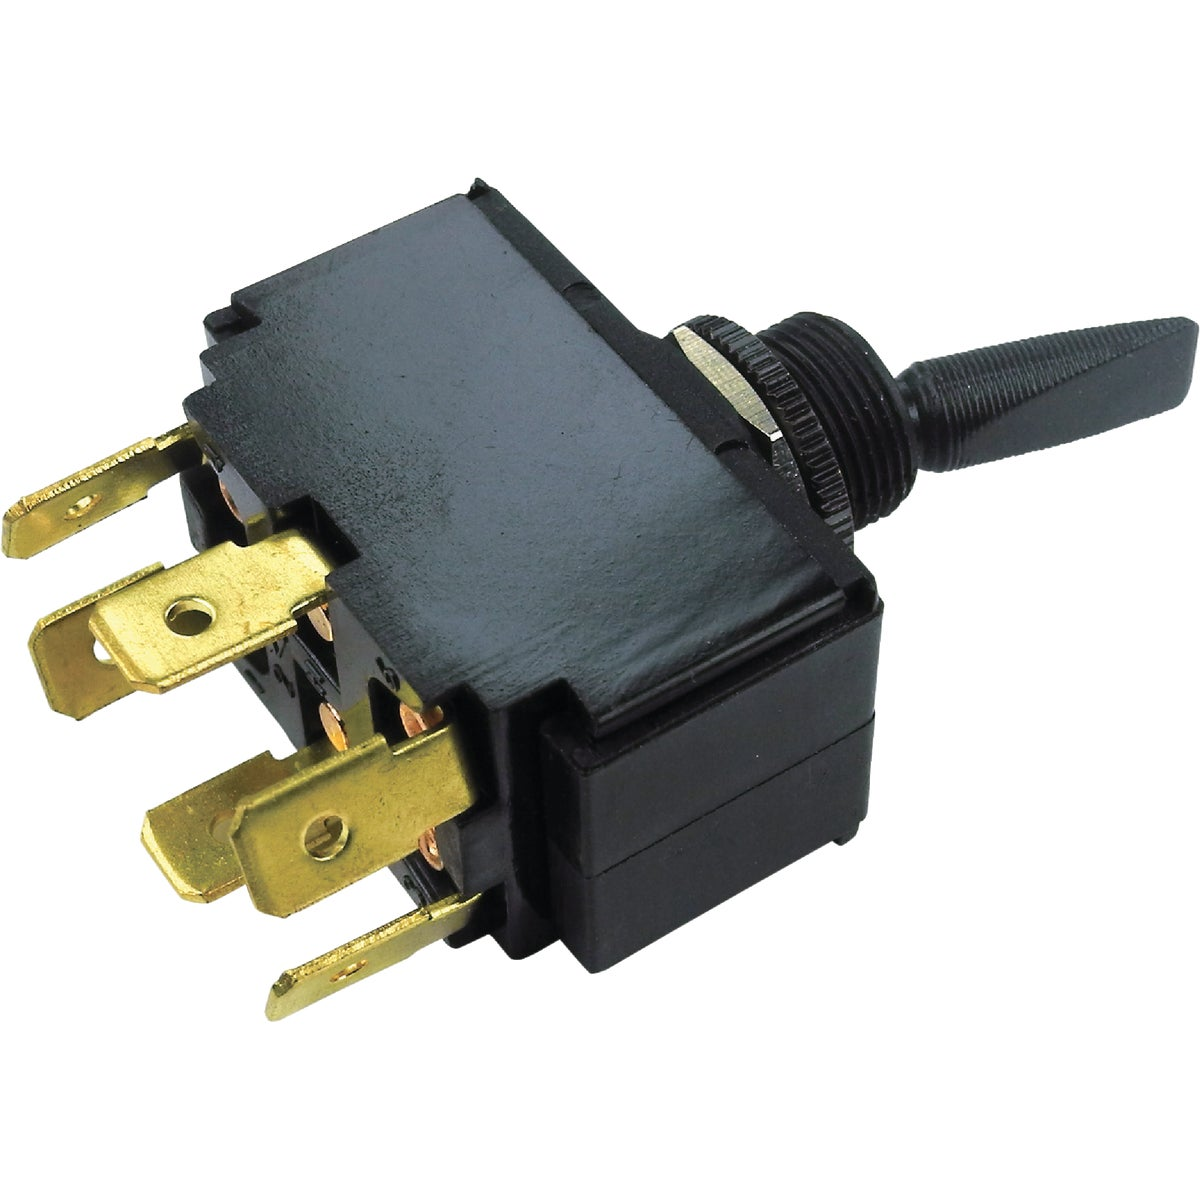 3POS TOGGLE SWITCH - 12021 by Seachoice Prod